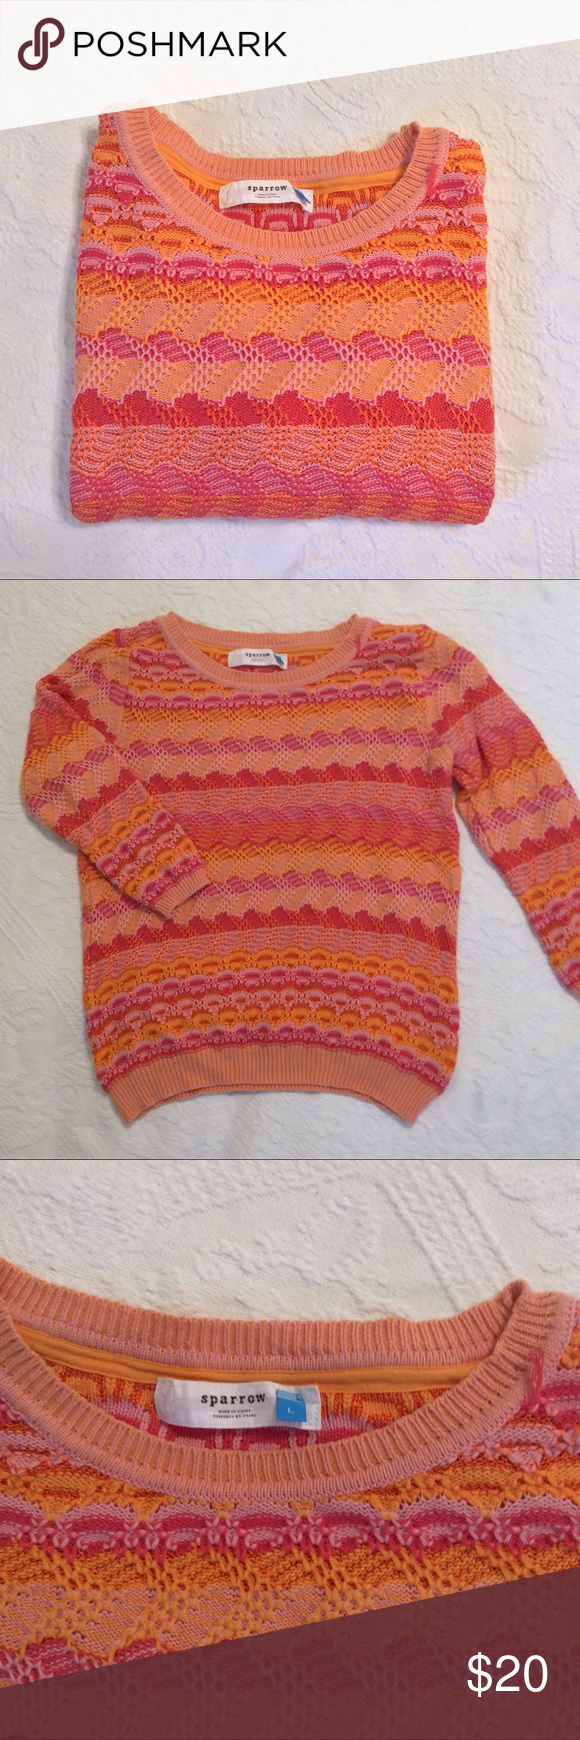 Anthropologie Sparrow Sweater, Large Lightweight sweater in pretty ...